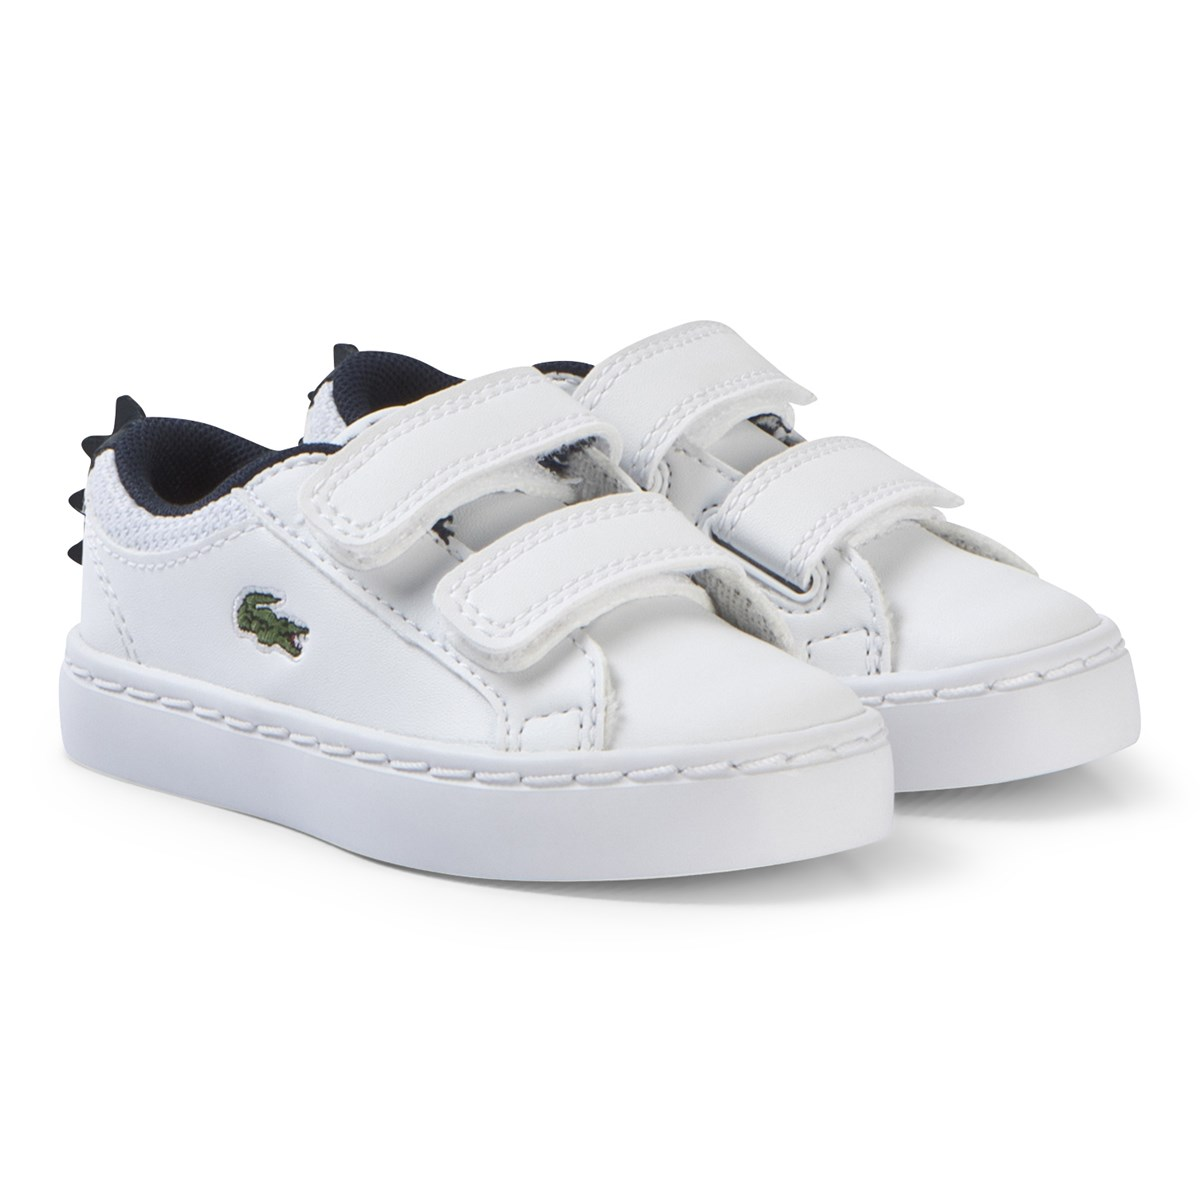 2c5a9cbcb Lacoste - White with Navy Crocodile Spine Straightset 119 Velcro ...